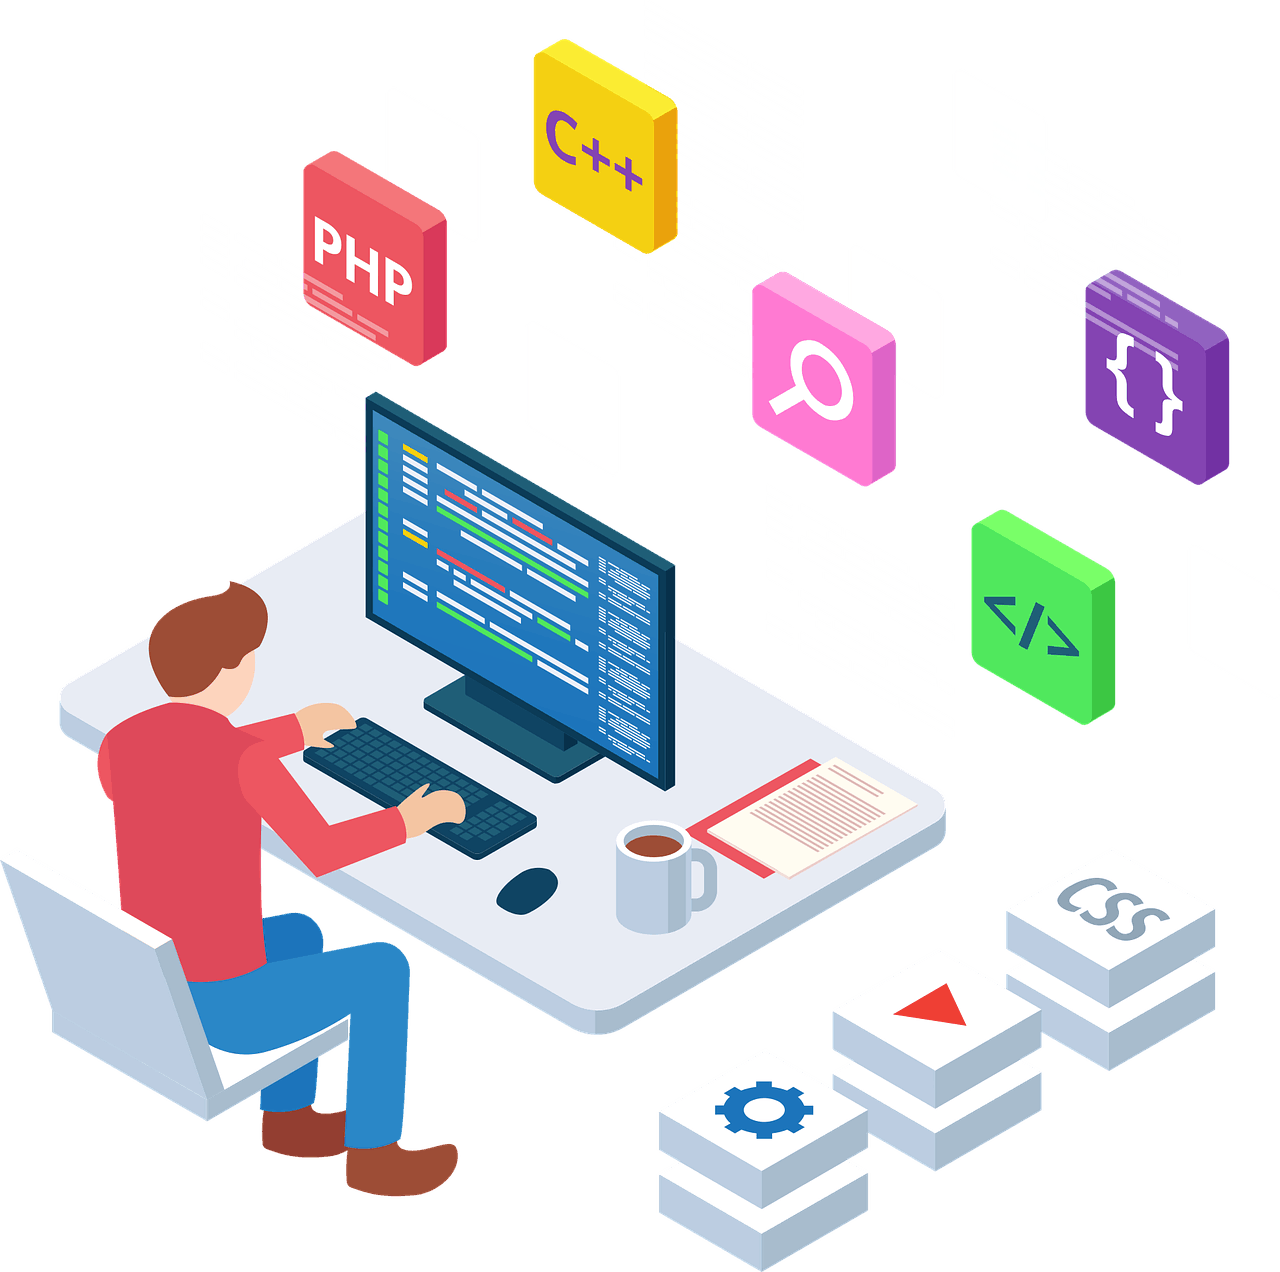 animated image of person sitting at his computer desk with blown-up images of programmer tools projected behind the monitor